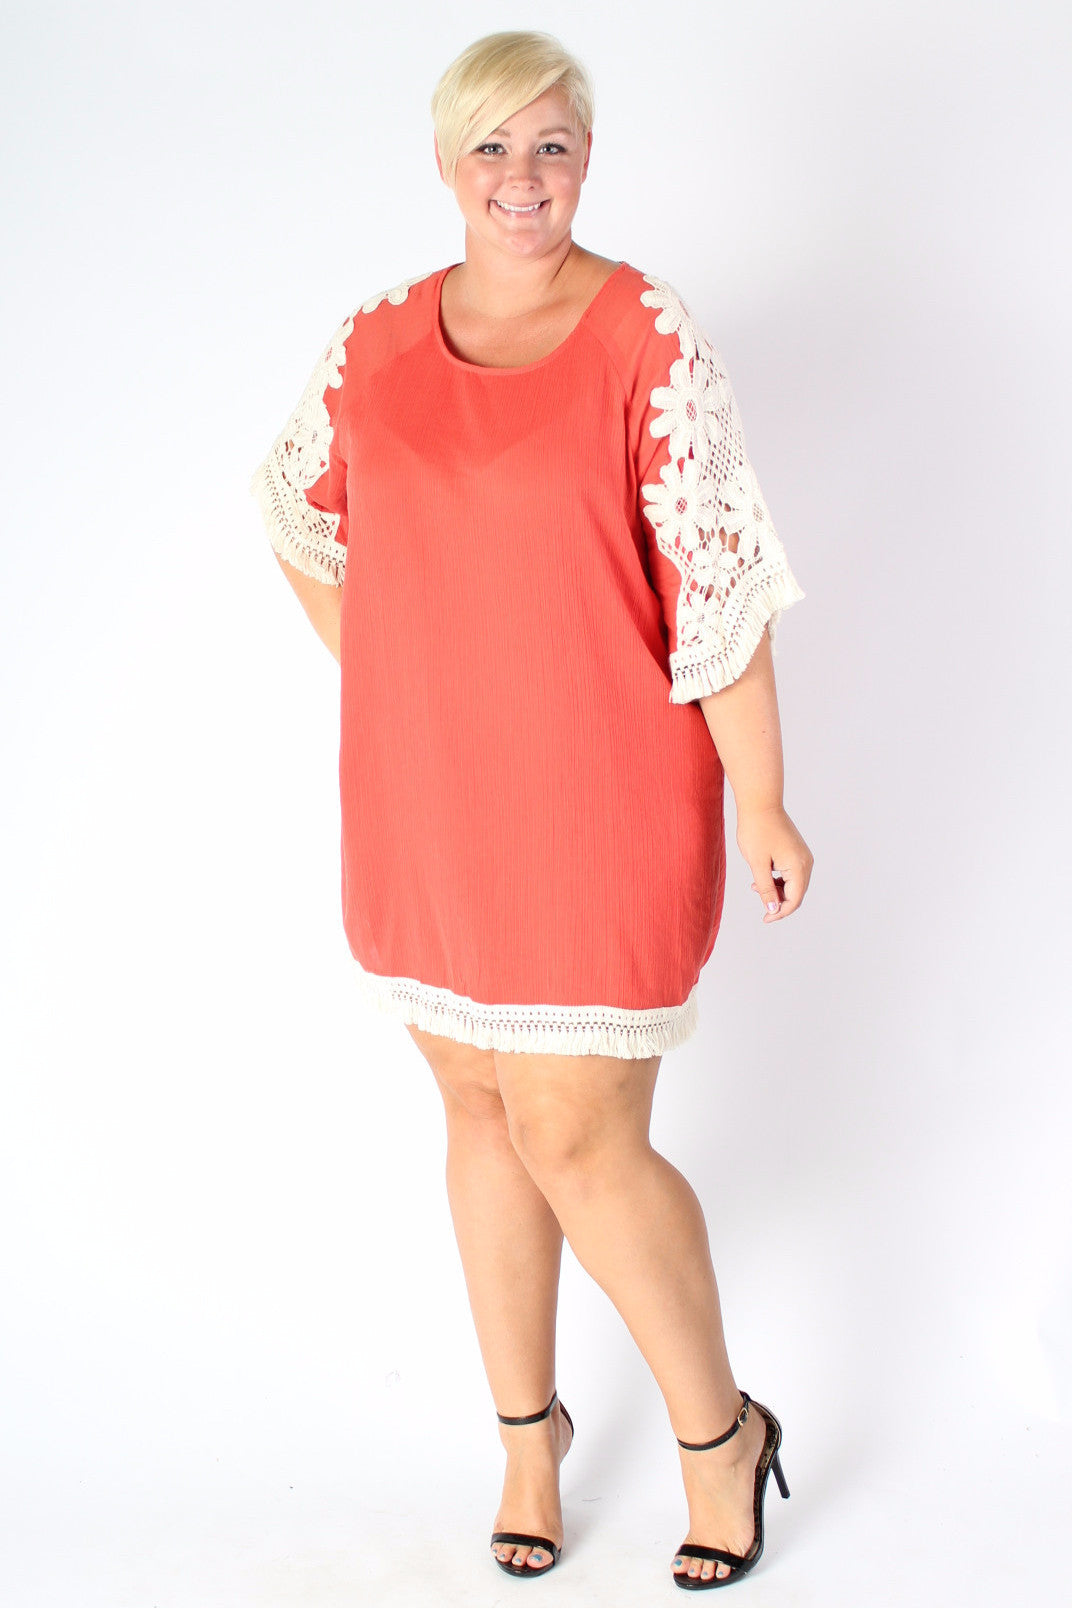 Plus Size Clothing for Women - Crochet Shift Dress - Papaya - Society+ - Society Plus - Buy Online Now! - 1